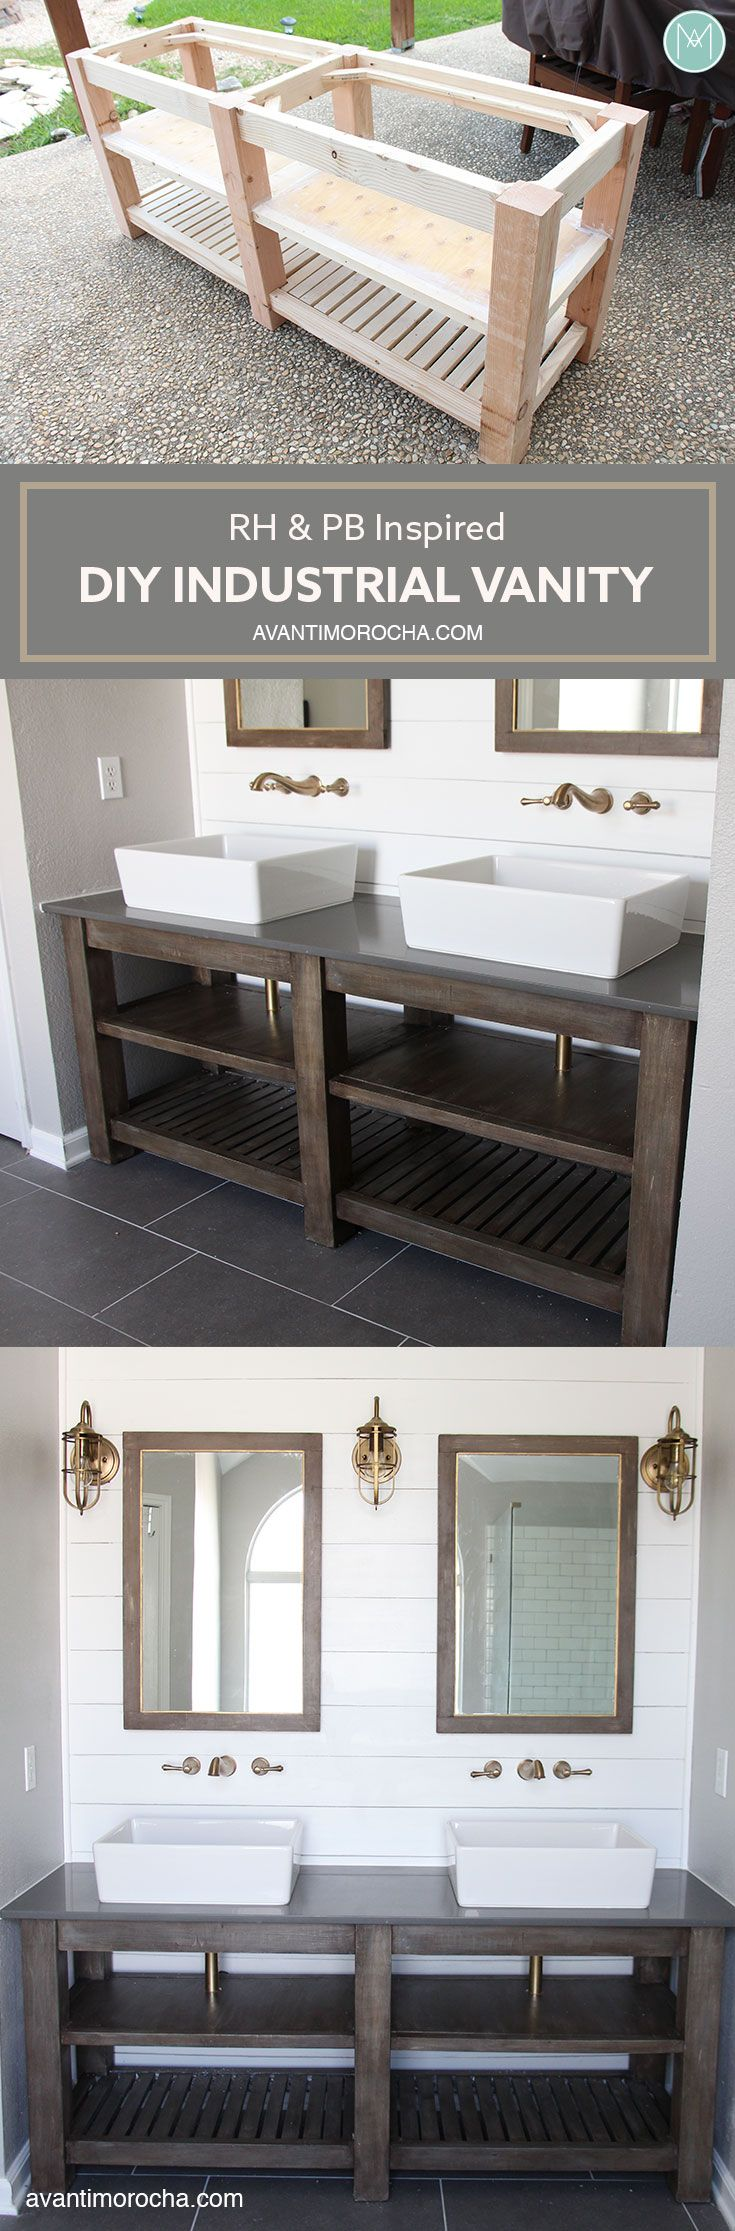 DIY Industrial Farmhouse Bathroom Vanity  Restoration Hardware | Pottery Barn inspired.